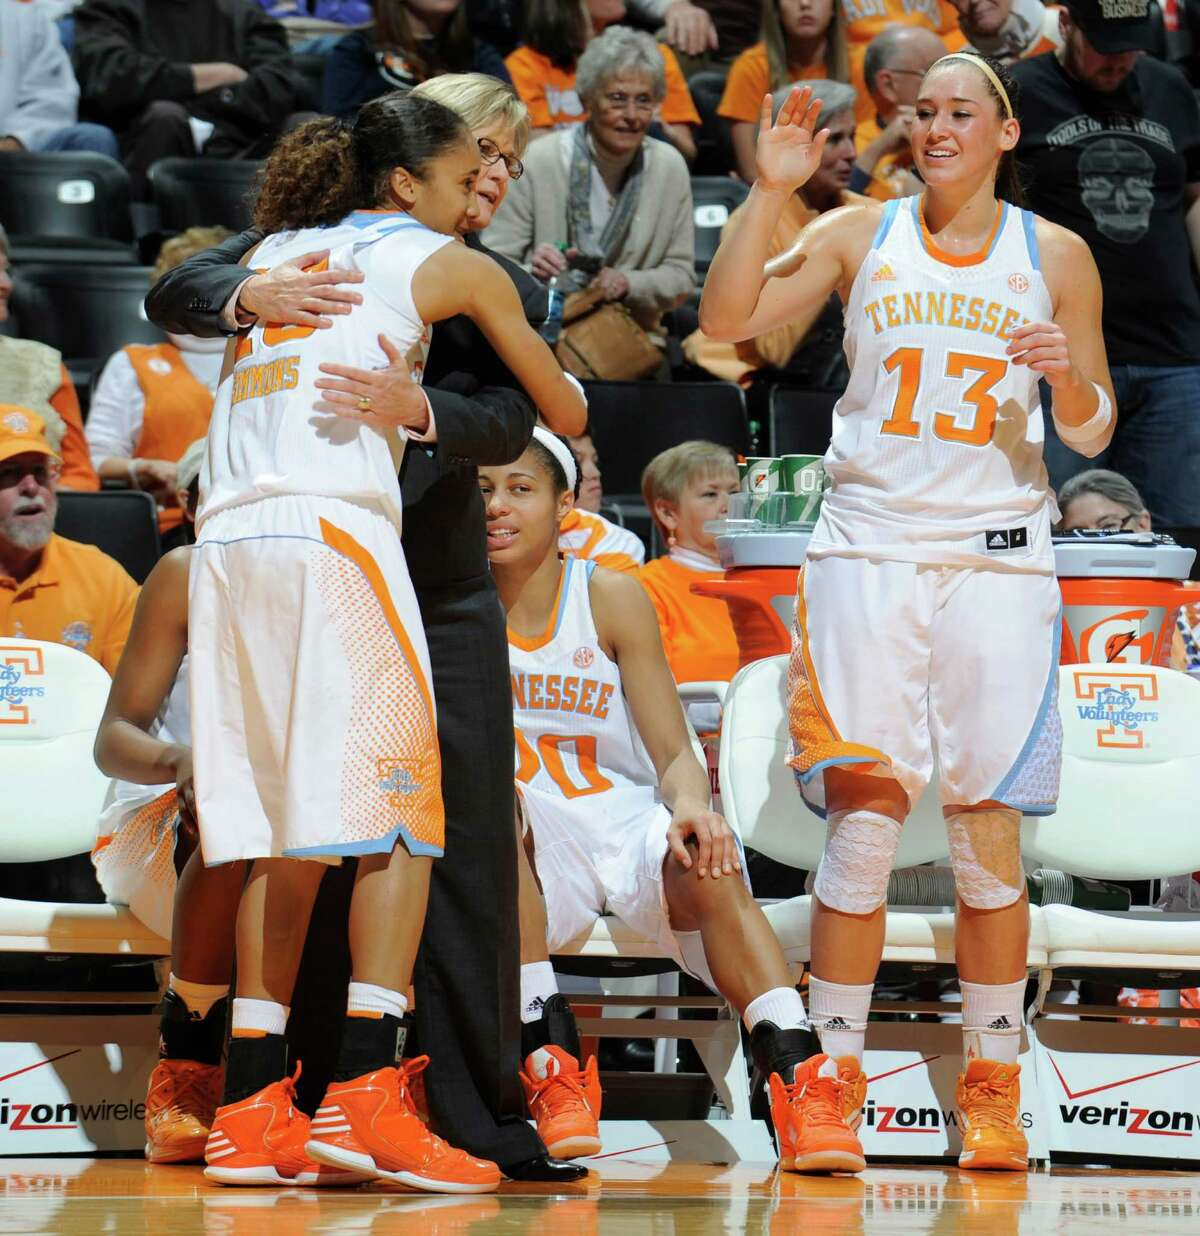 Tennessee's Meighan Simmons, left, is congratulated by head coach Holly Warlick as she comes to the bench after scoring a career-high 33 points against North Carolina during an NCAA college basketball game at Thompson-Boling Arena in Knoxville, Tenn., Sunday, Dec. 2, 2012. Tennessee won the game 102-57. (AP Photo/The Knoxville News Sentinel, Amy Smotherman Burgess)